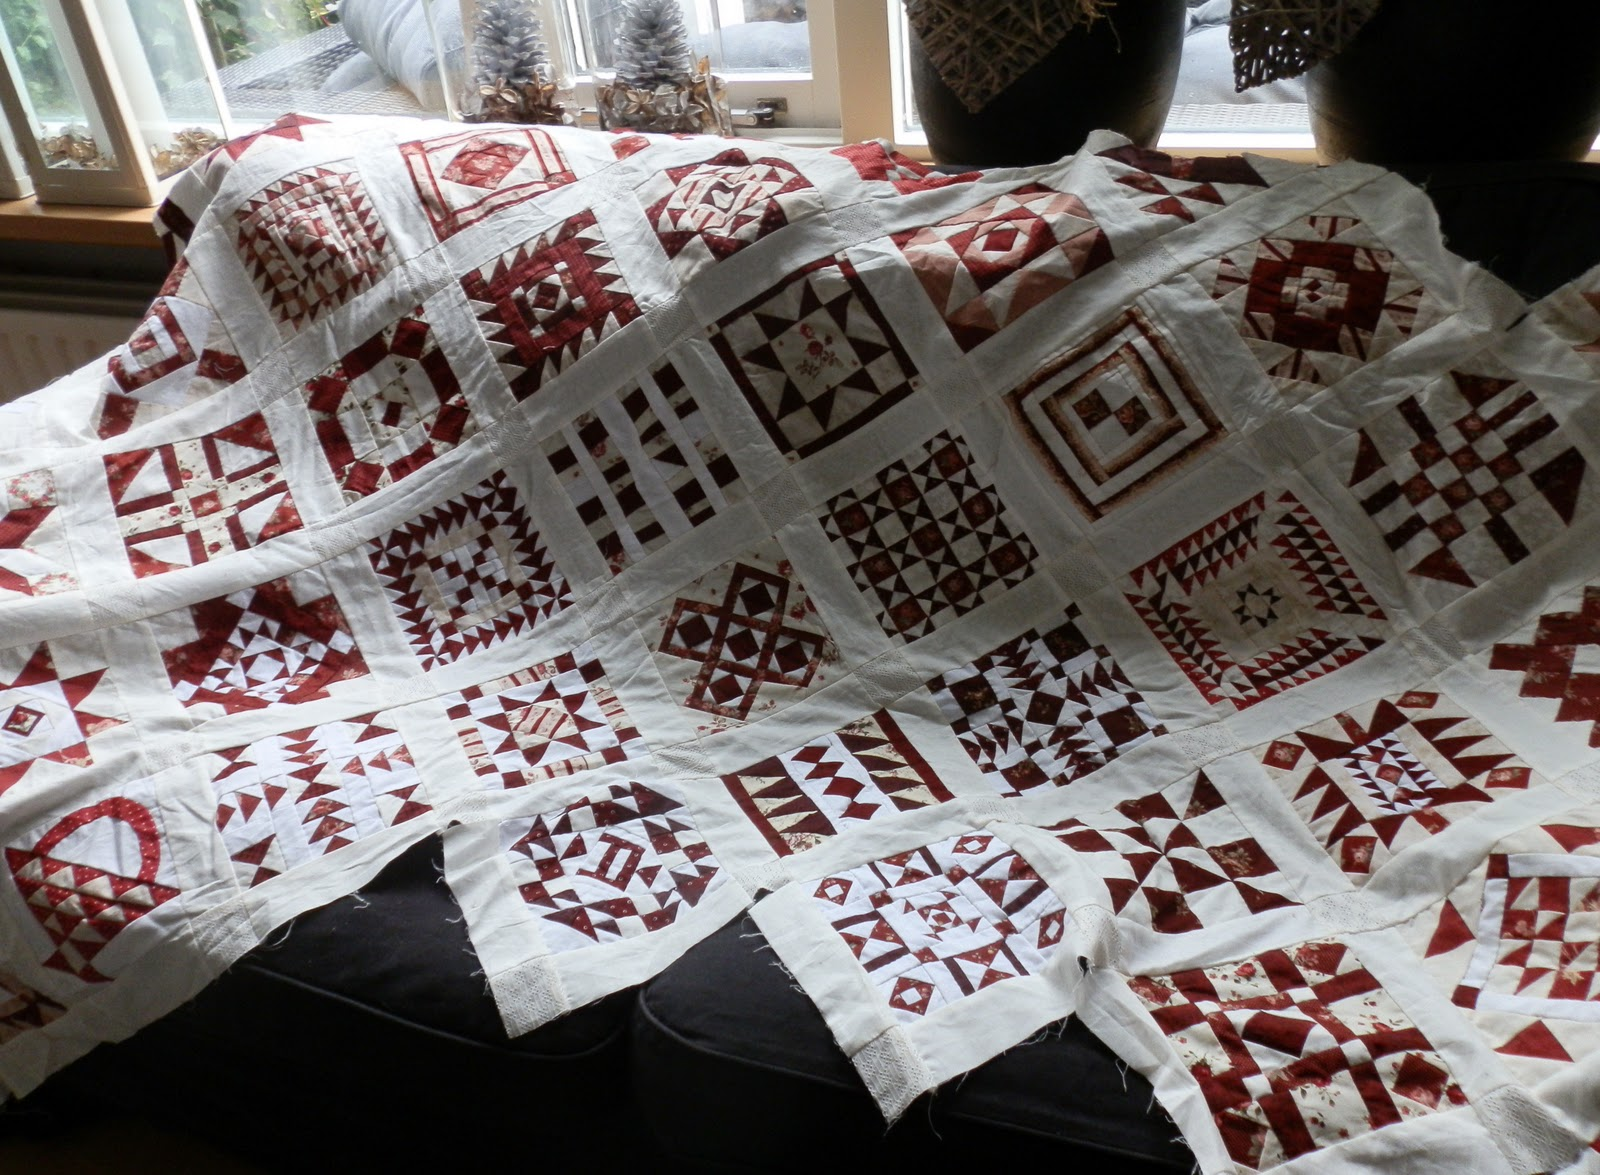 wilma s homemade quilts nearly insane